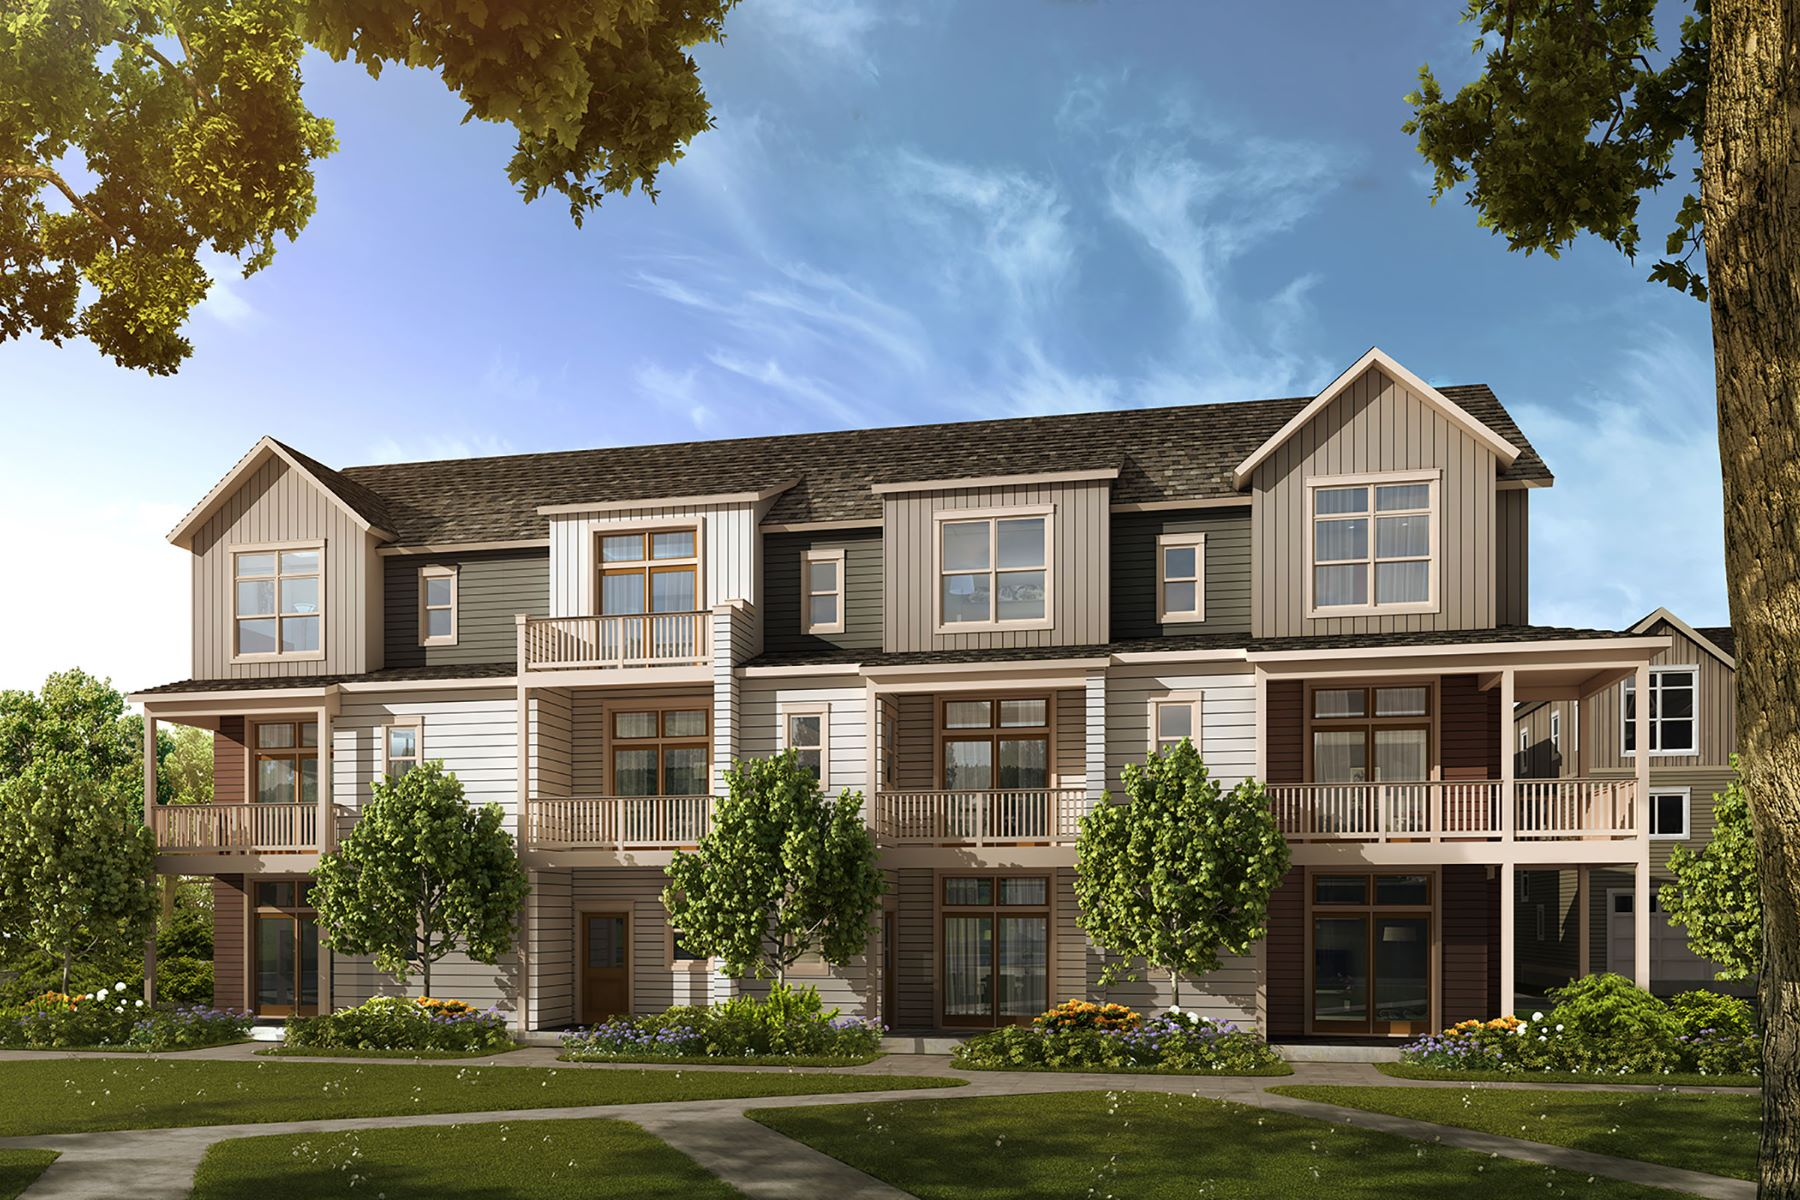 Single Family Home for Active at Beautiful End Unit In New Development! 526 West Amherst Avenue #Rose Bldg 10 Englewood, Colorado 80110 United States